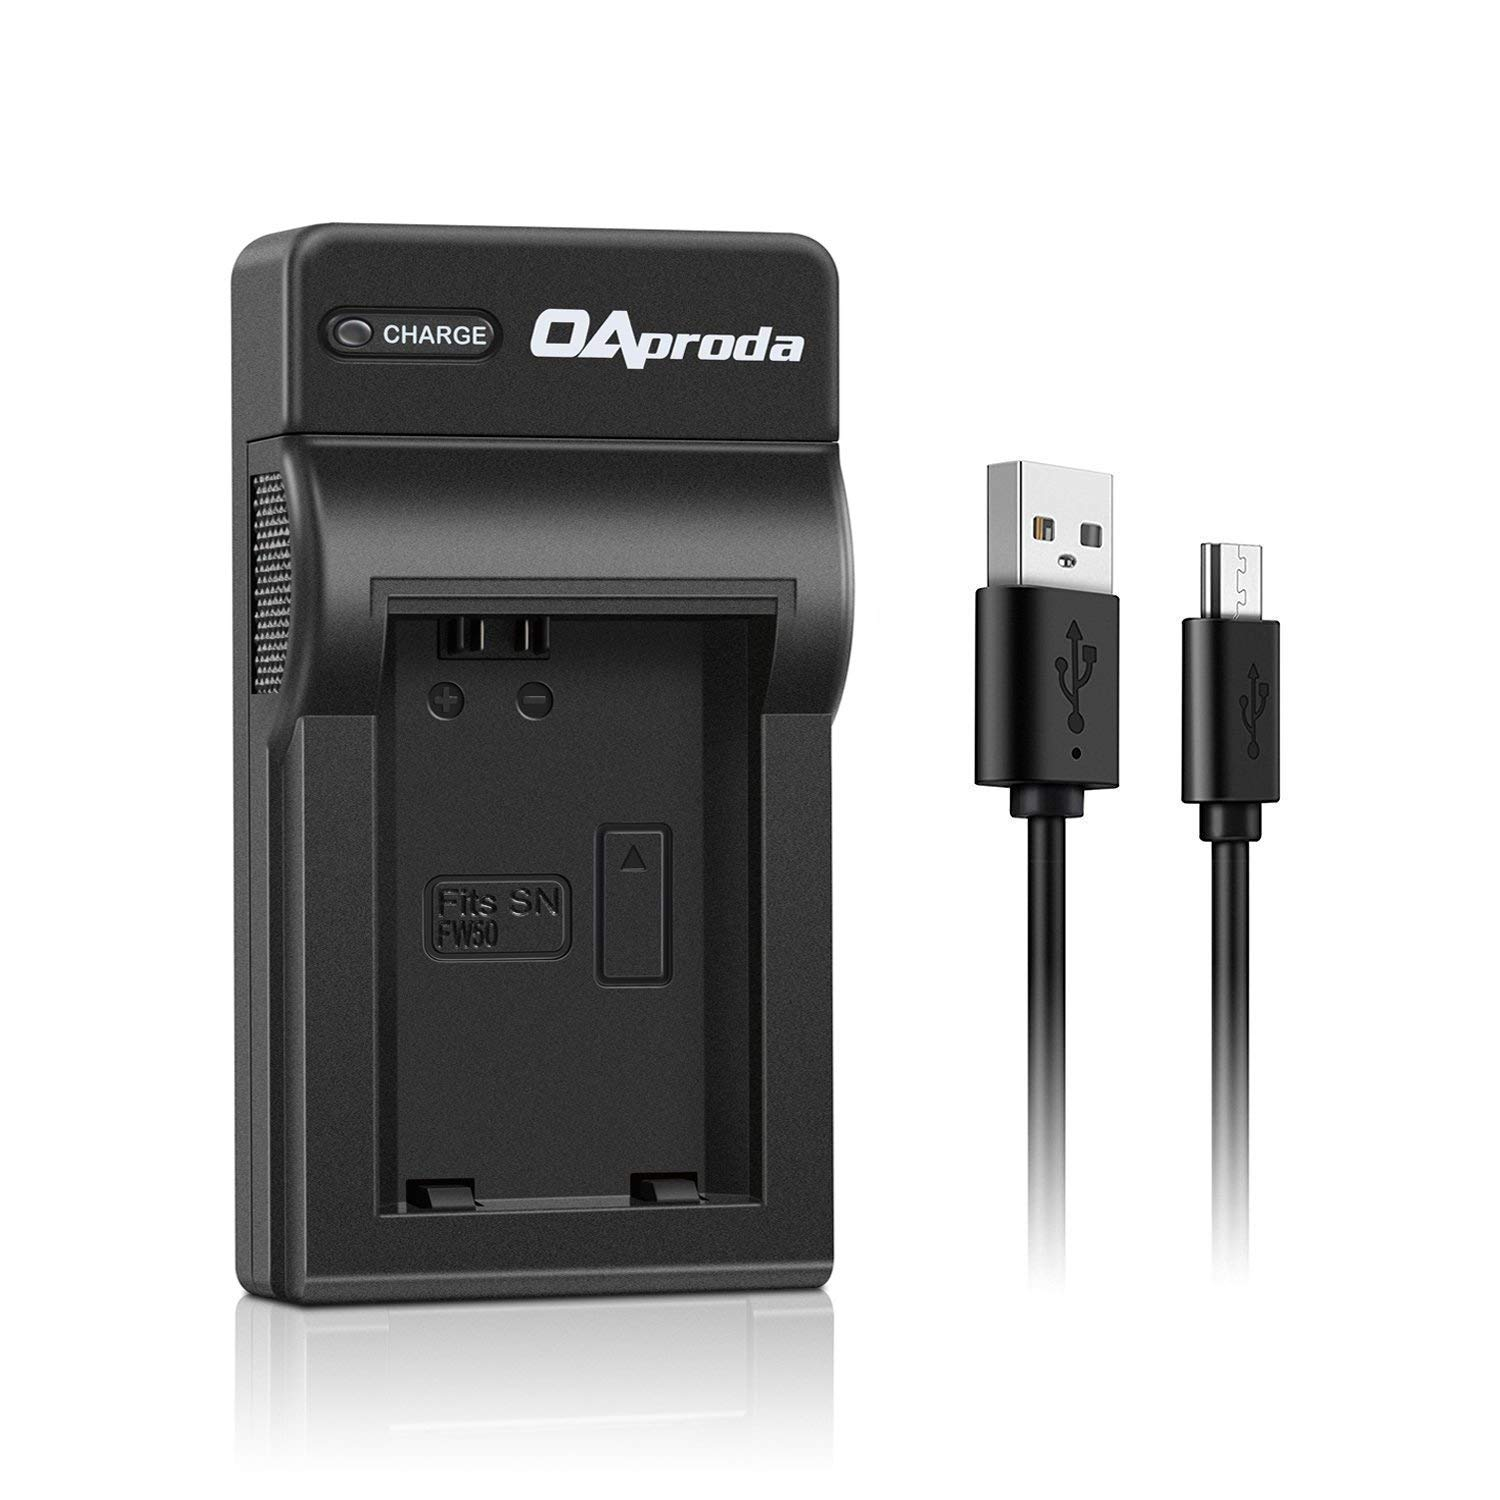 OAproda NP-FW50 New Generation High Efficient Silm Micro USB Battery Charger for Sony Alpha a7R, a7S, a7S, a7, a7s II, a6500, a6300, a6000, NEX-3, NEX-5N, NEX-5, NEX-5R, NEX-5T, RX10 Digital Camera